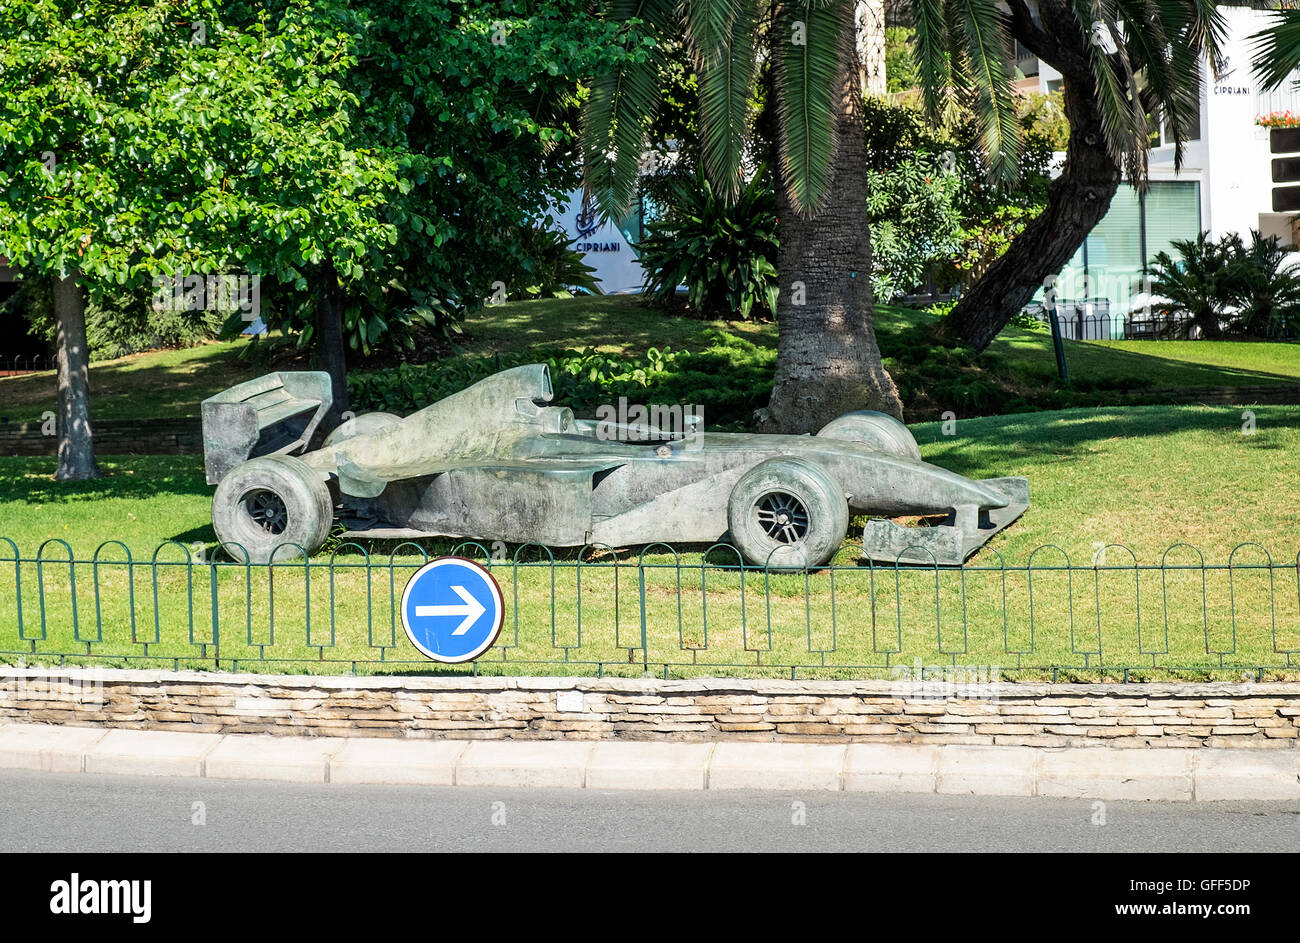 A bronze Formula 1 car, one of a series of racing car statues around the Grand Prix circuit in Monte Carlo, Monaco - Stock Image